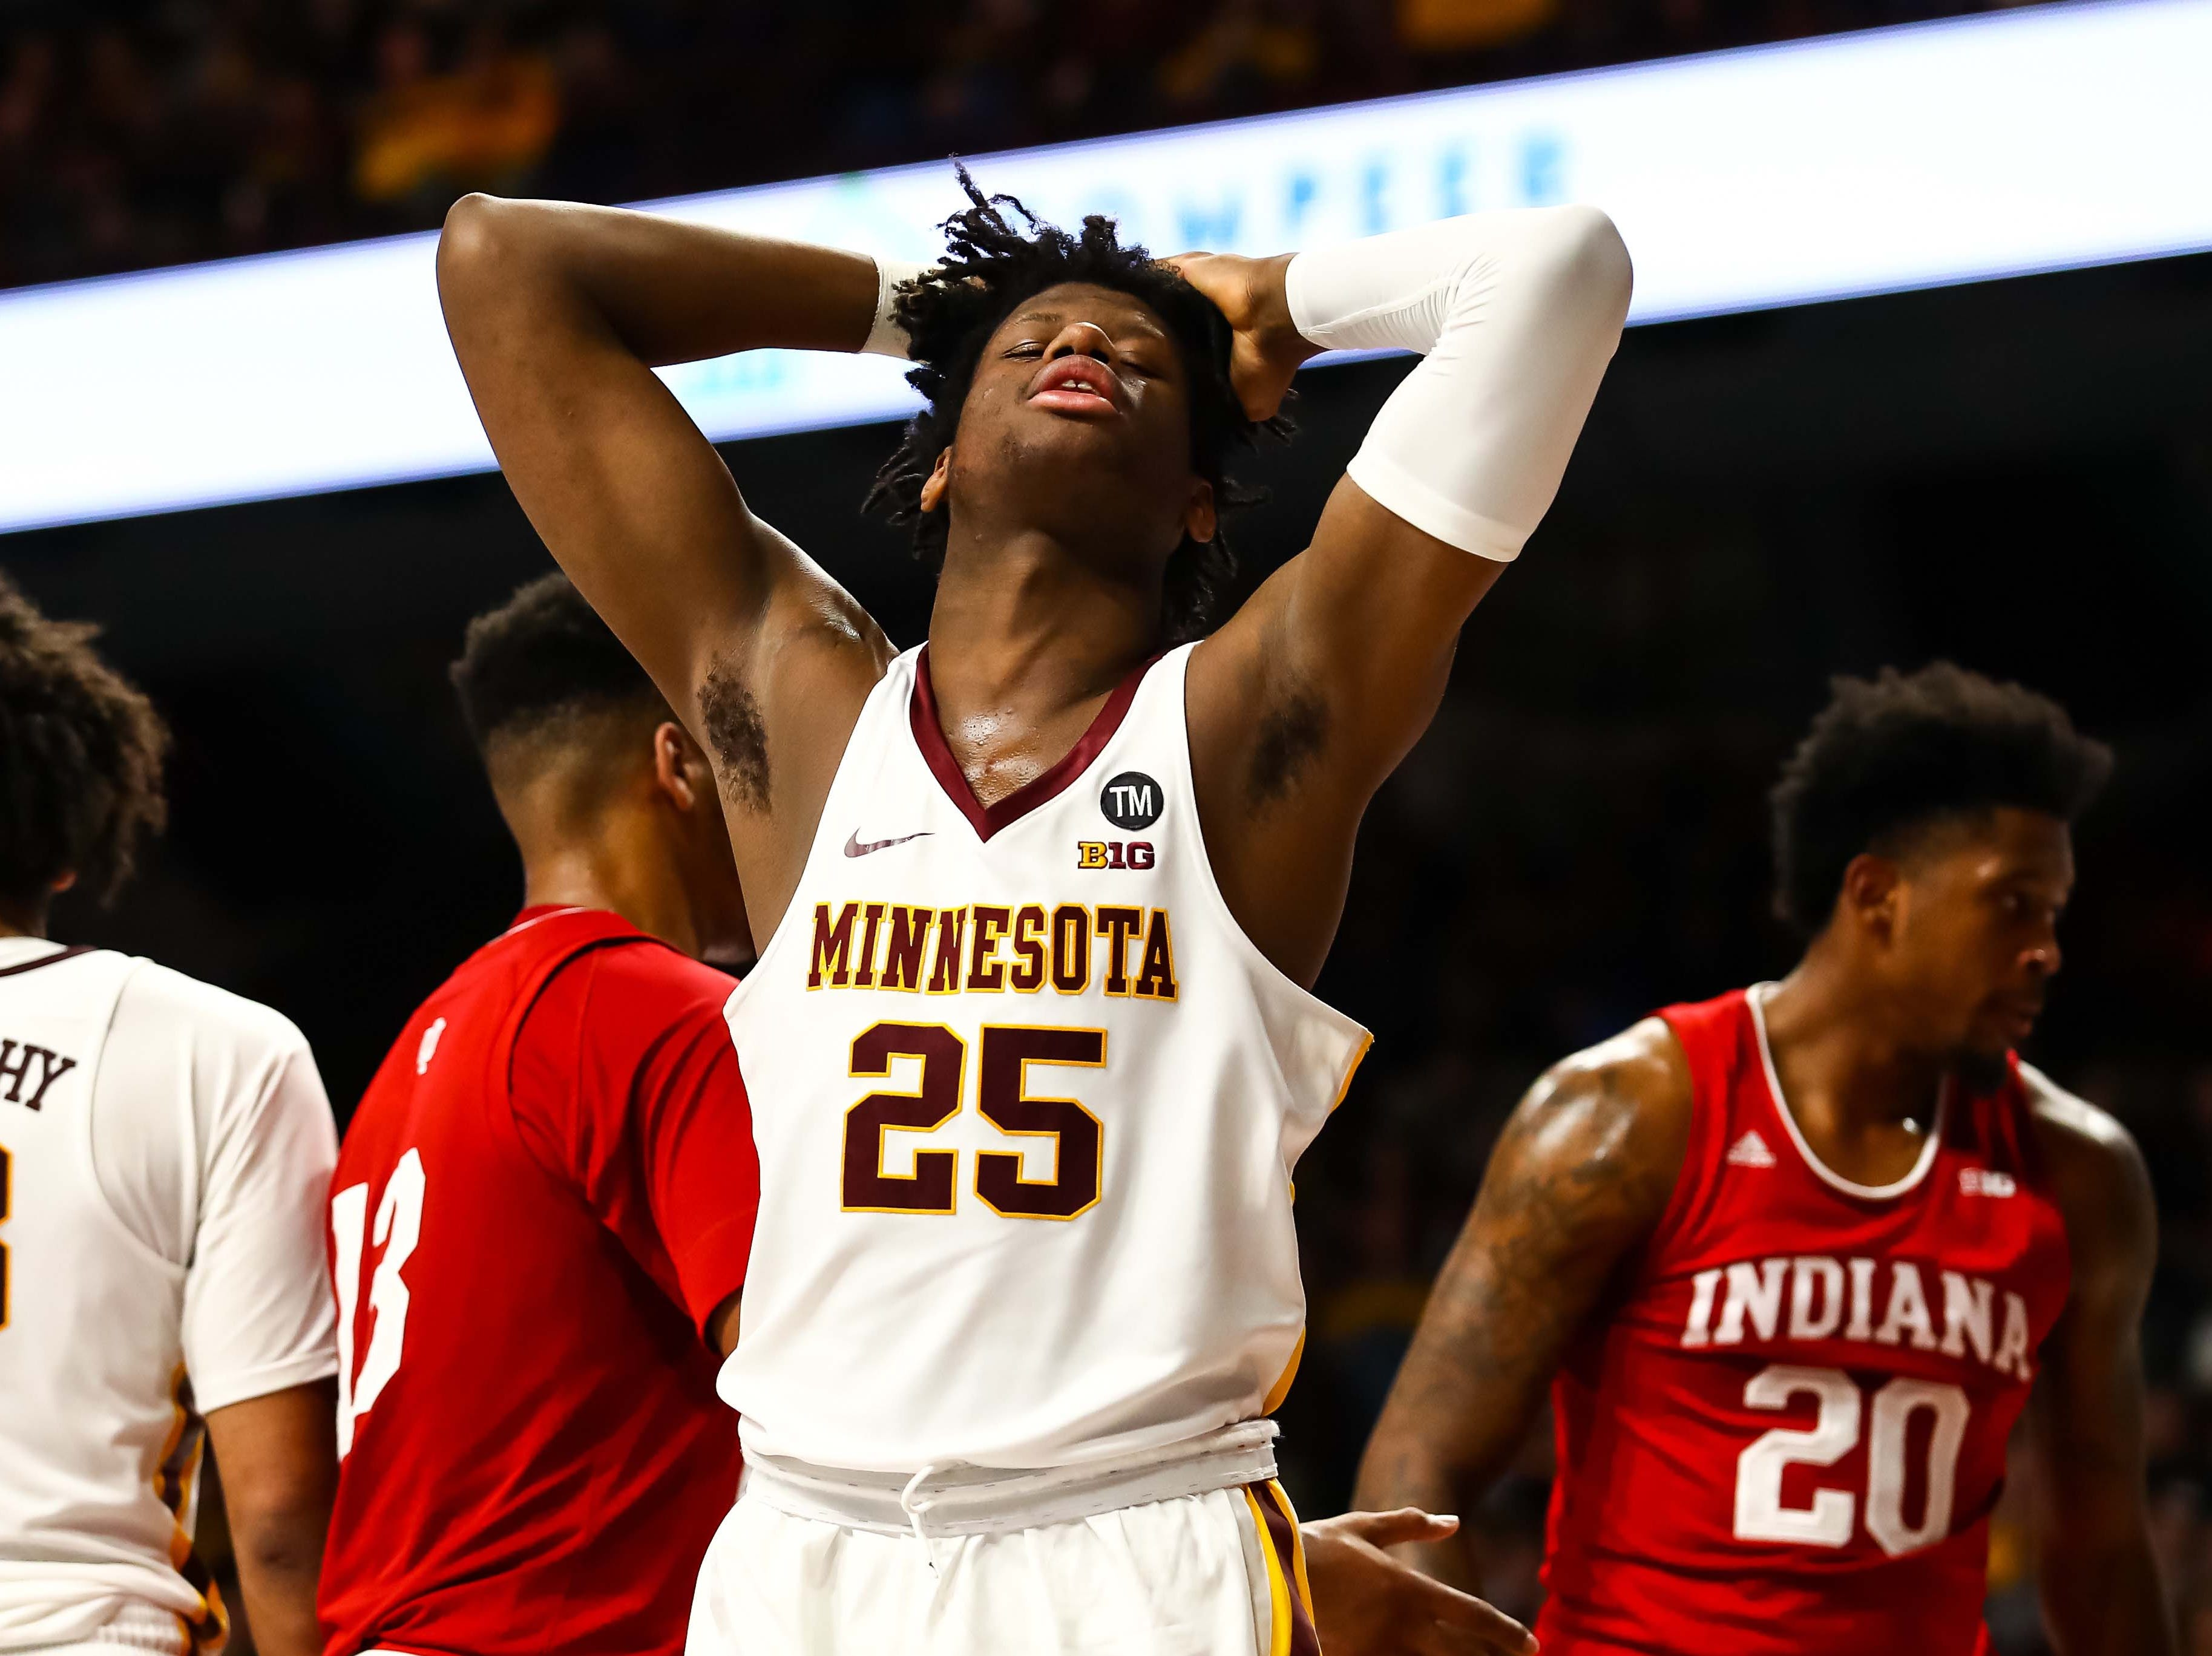 Feb 16, 2019; Minneapolis, MN, USA; Minnesota Golden Gophers center Daniel Oturu (25) reacts after getting called for a foul against the Indiana Hoosiers in the second half at Williams Arena. The Minnesota Golden Gophers defeatd the Indiana Hoosiers 84-63. Mandatory Credit: David Berding-USA TODAY Sports